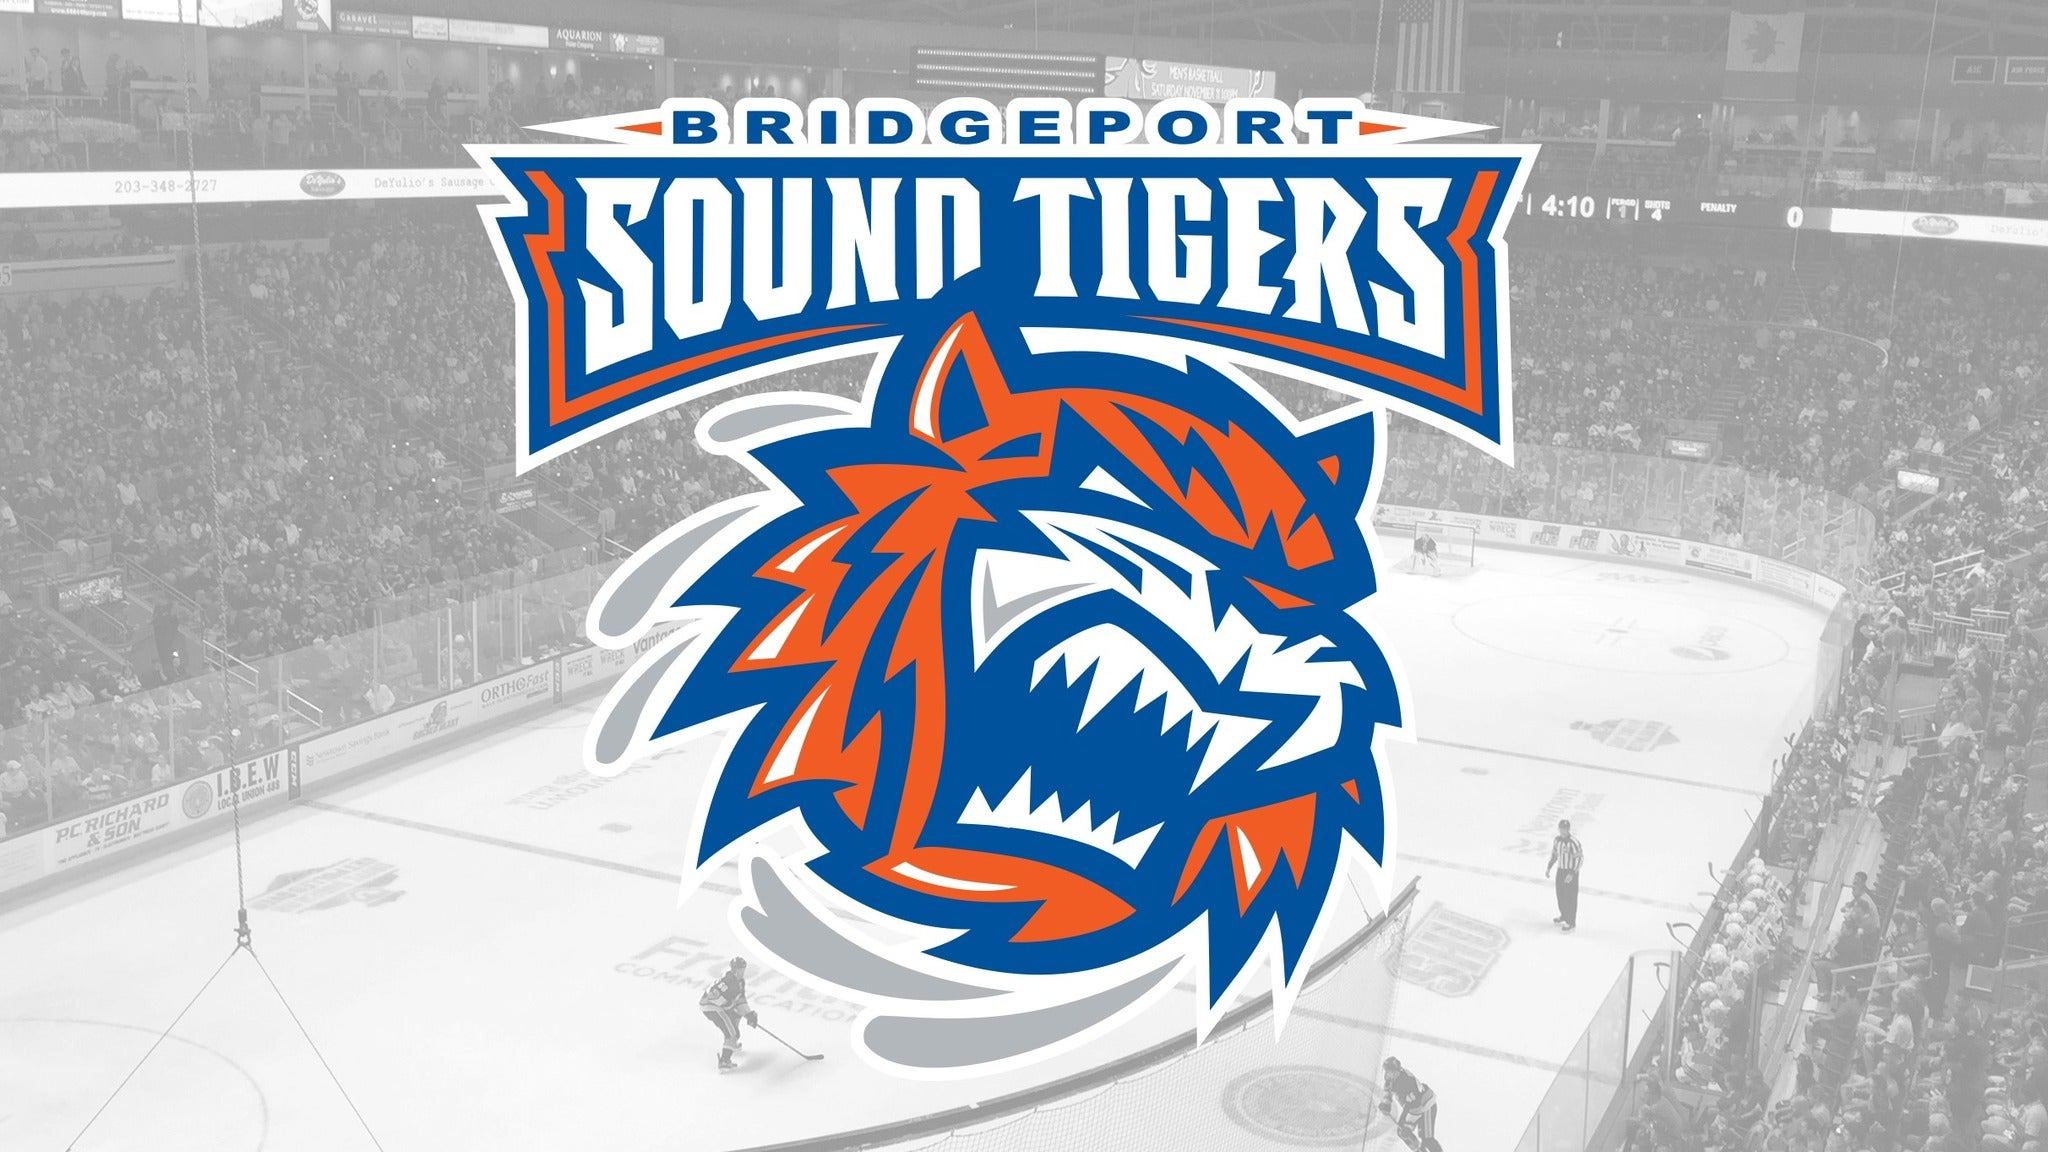 Bridgeport Sound Tigers vs. Wilkes Barre Scranton Penguins - Bridgeport, CT 06604